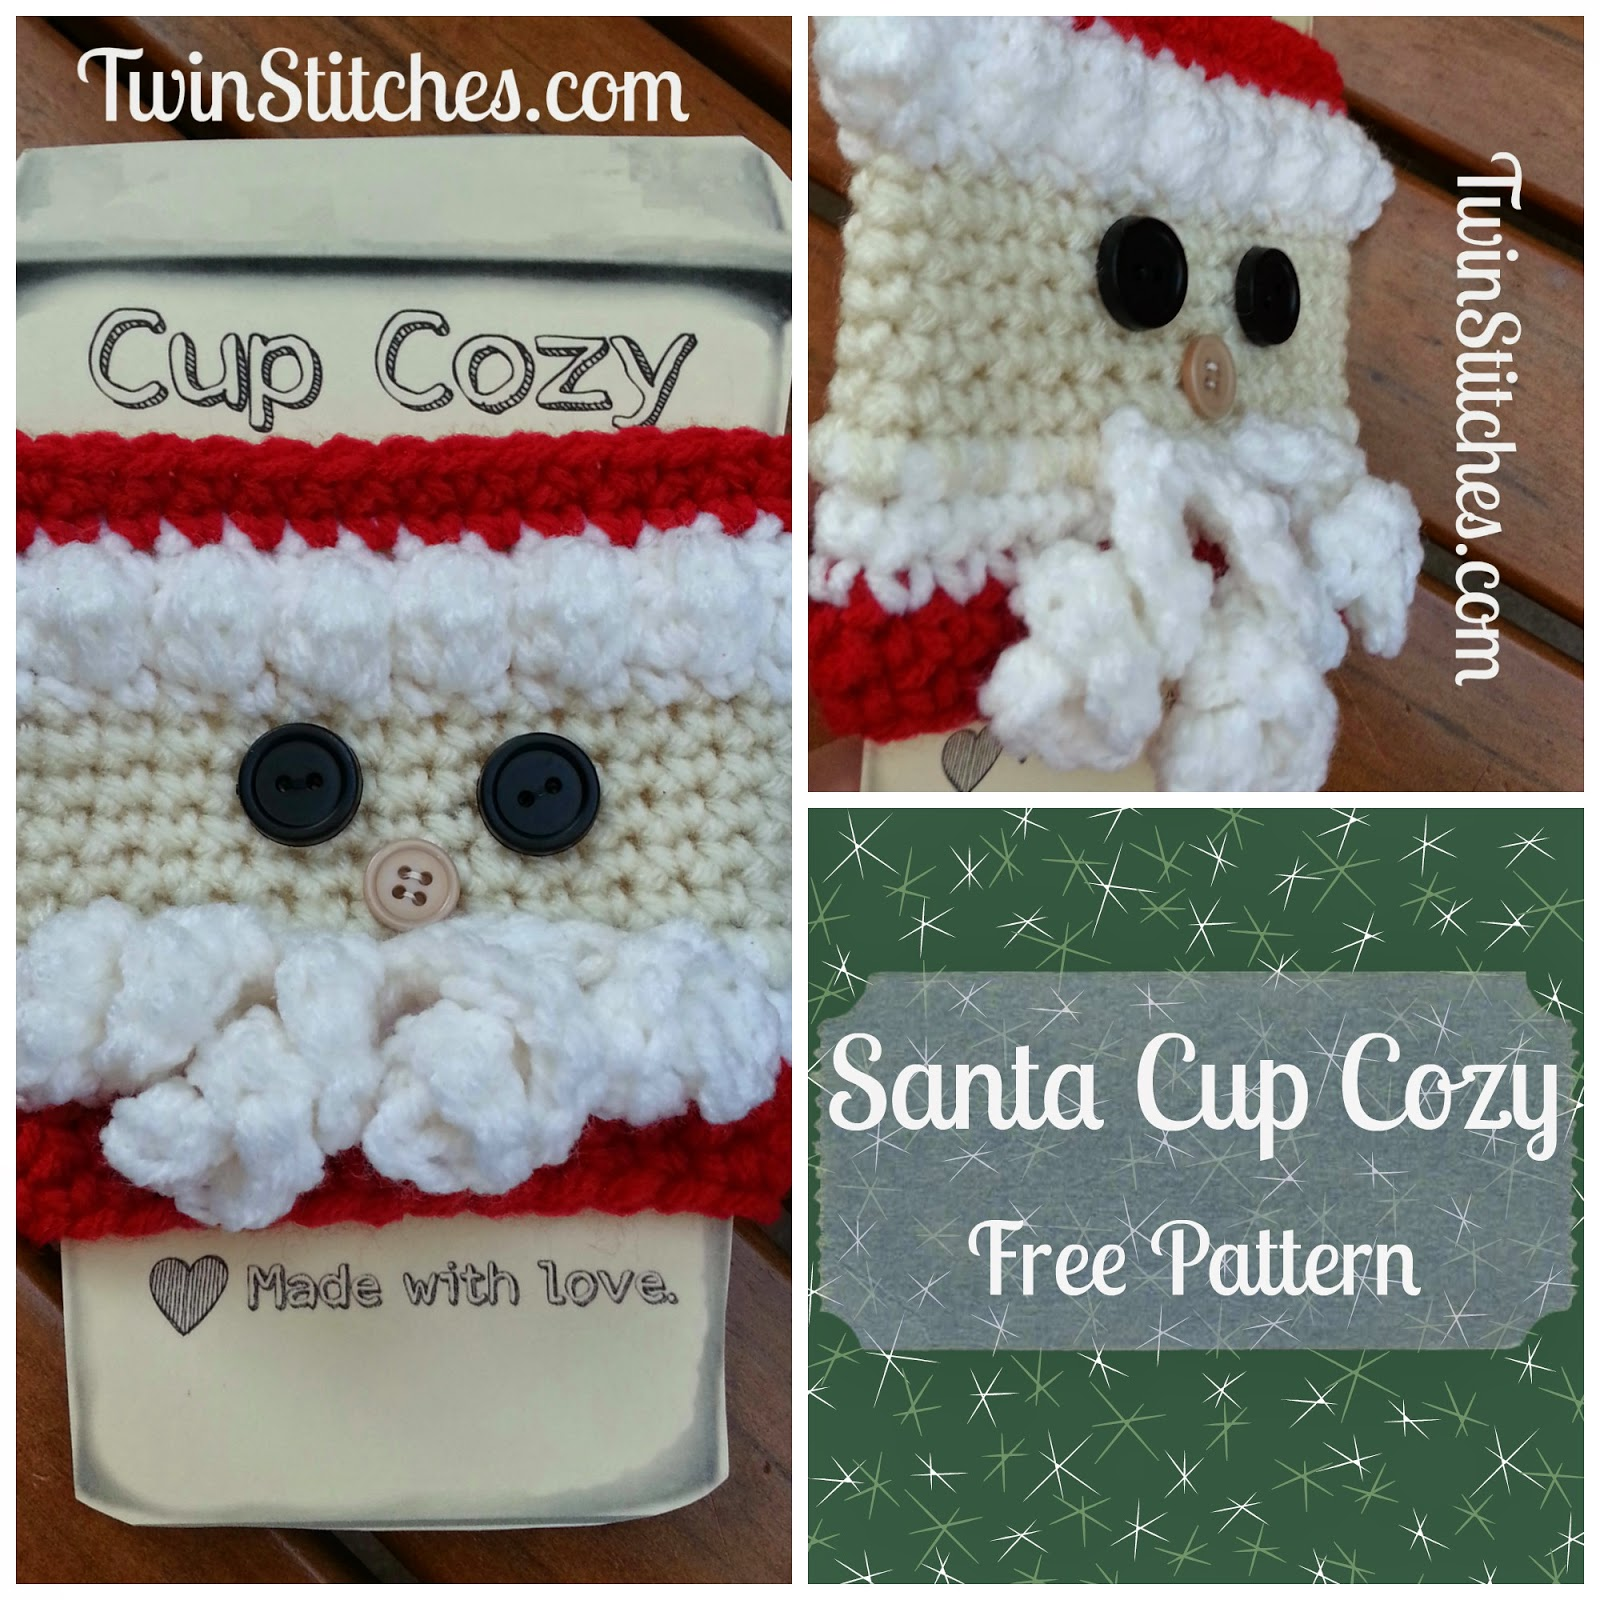 Tw In Stitches Santa Cup Cozy Free Pattern